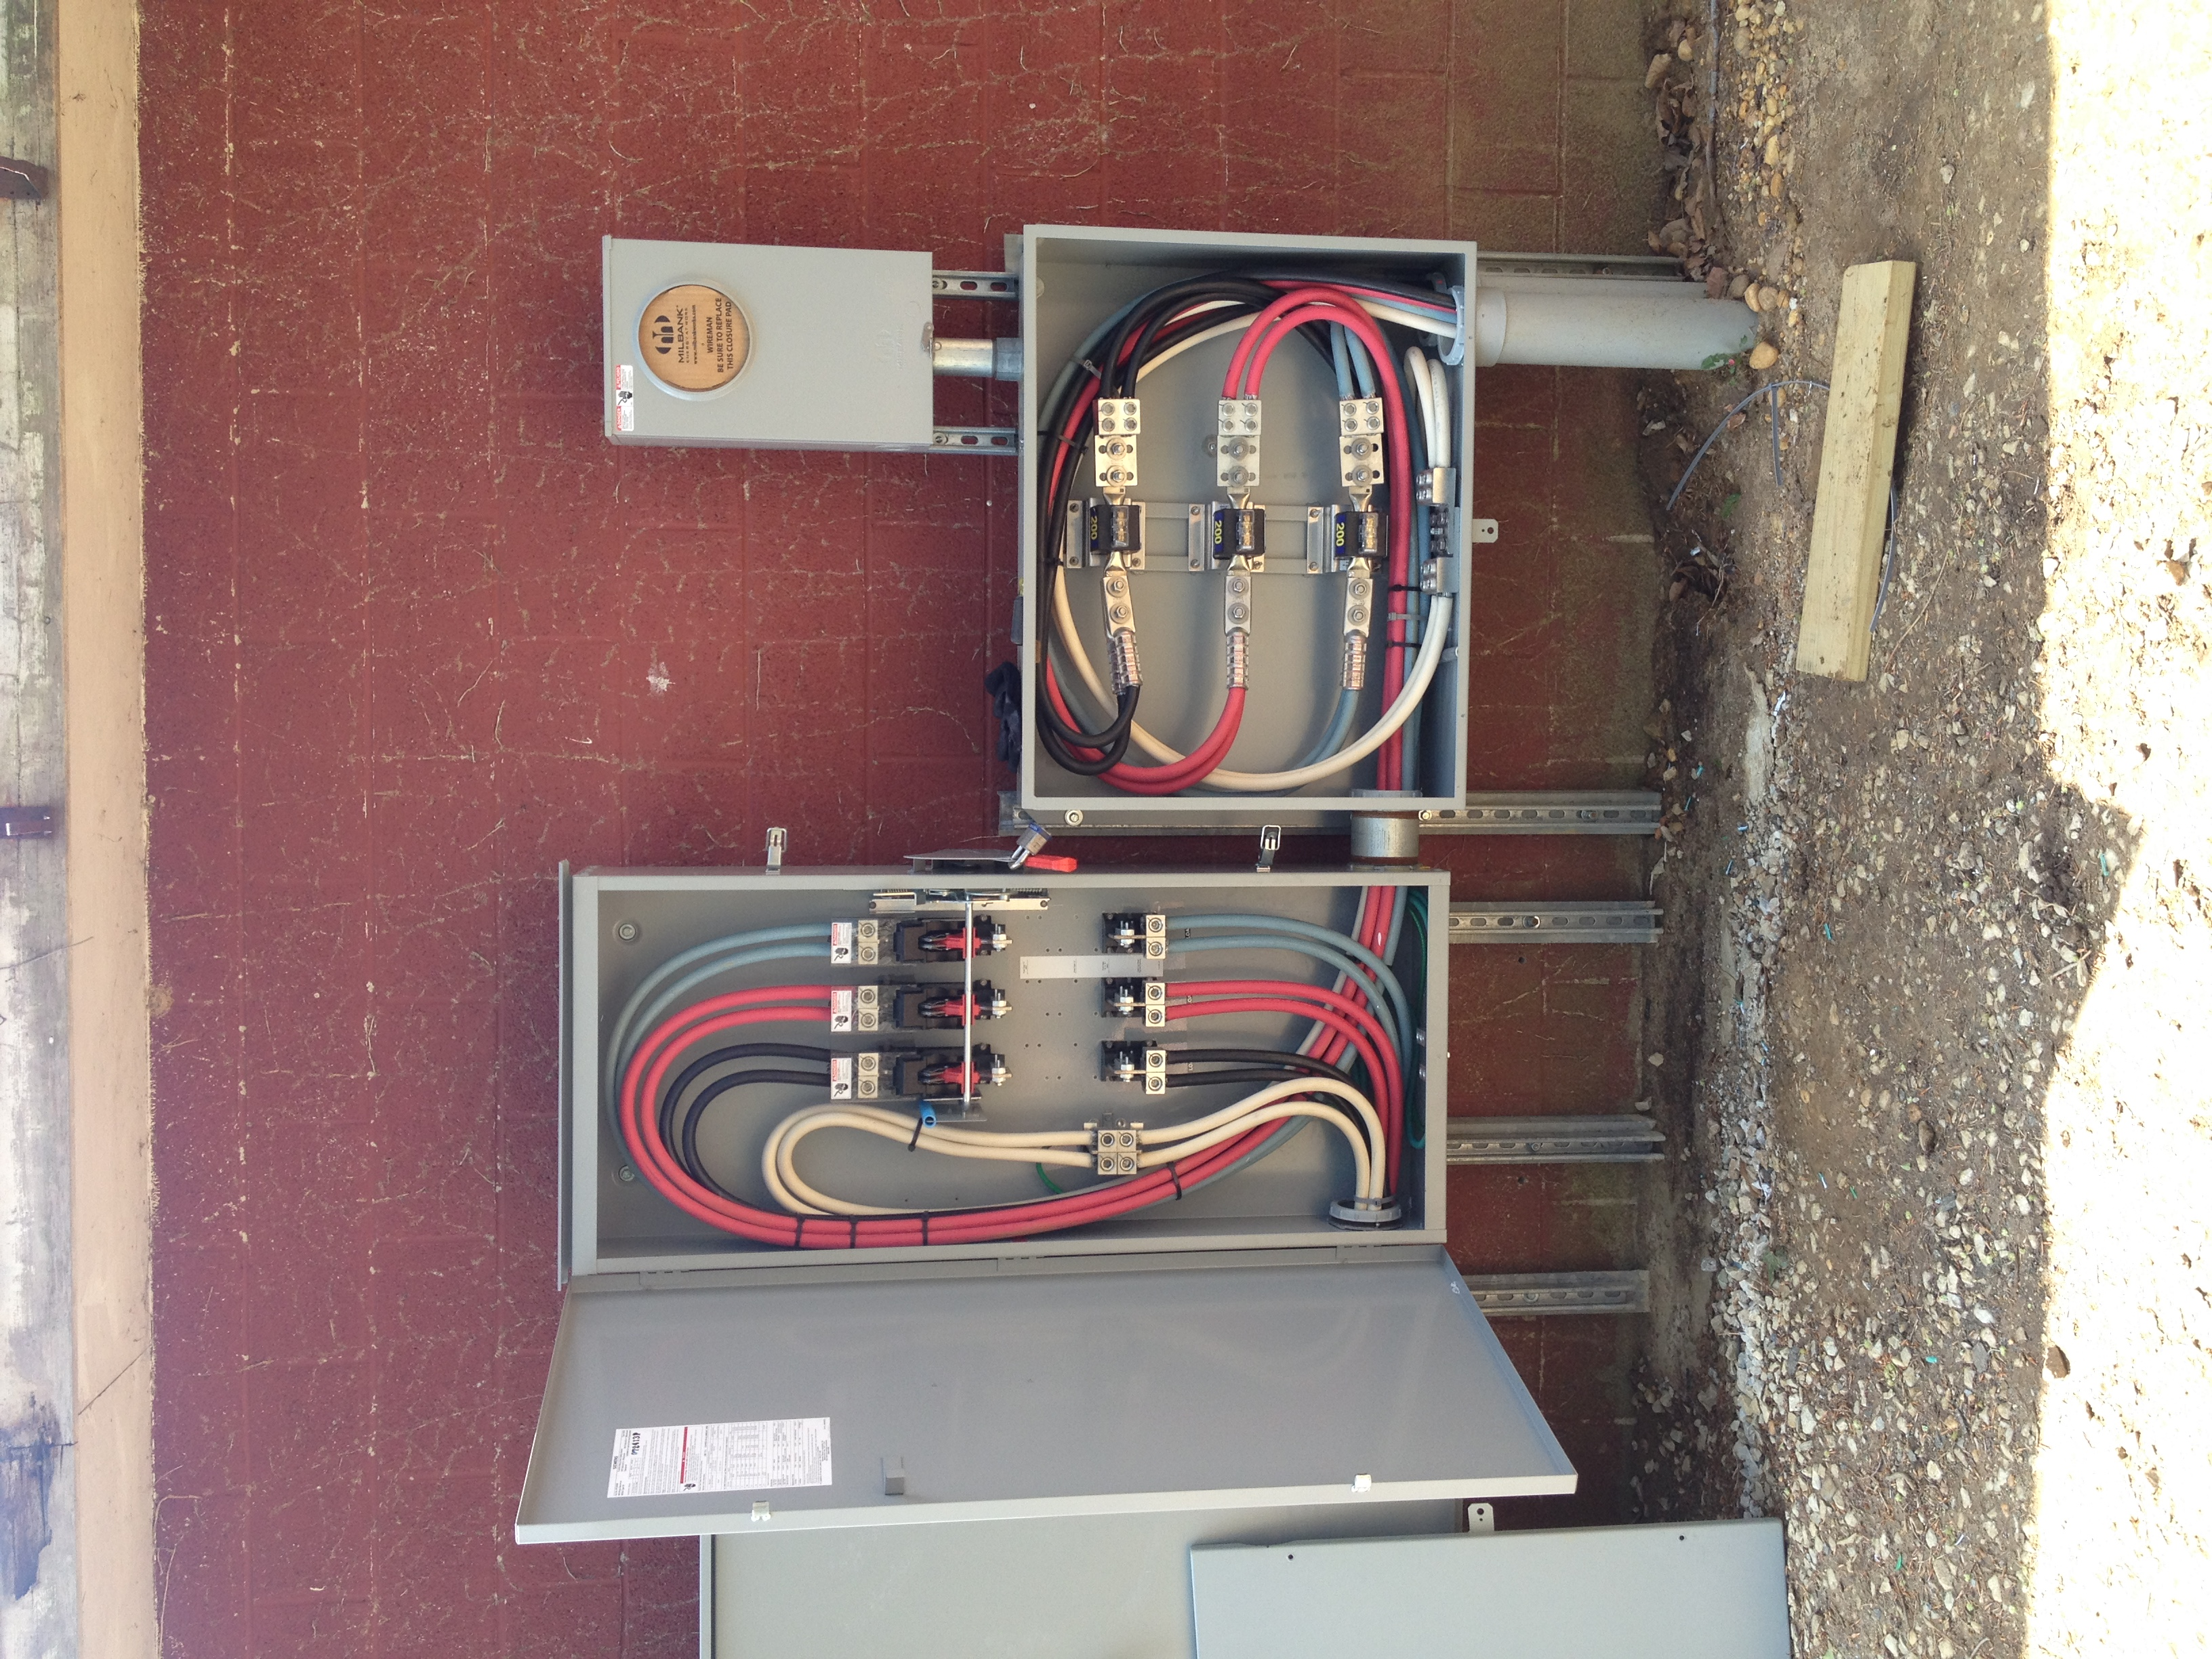 800 Amp Residential Service Page 2 Electrician Talk